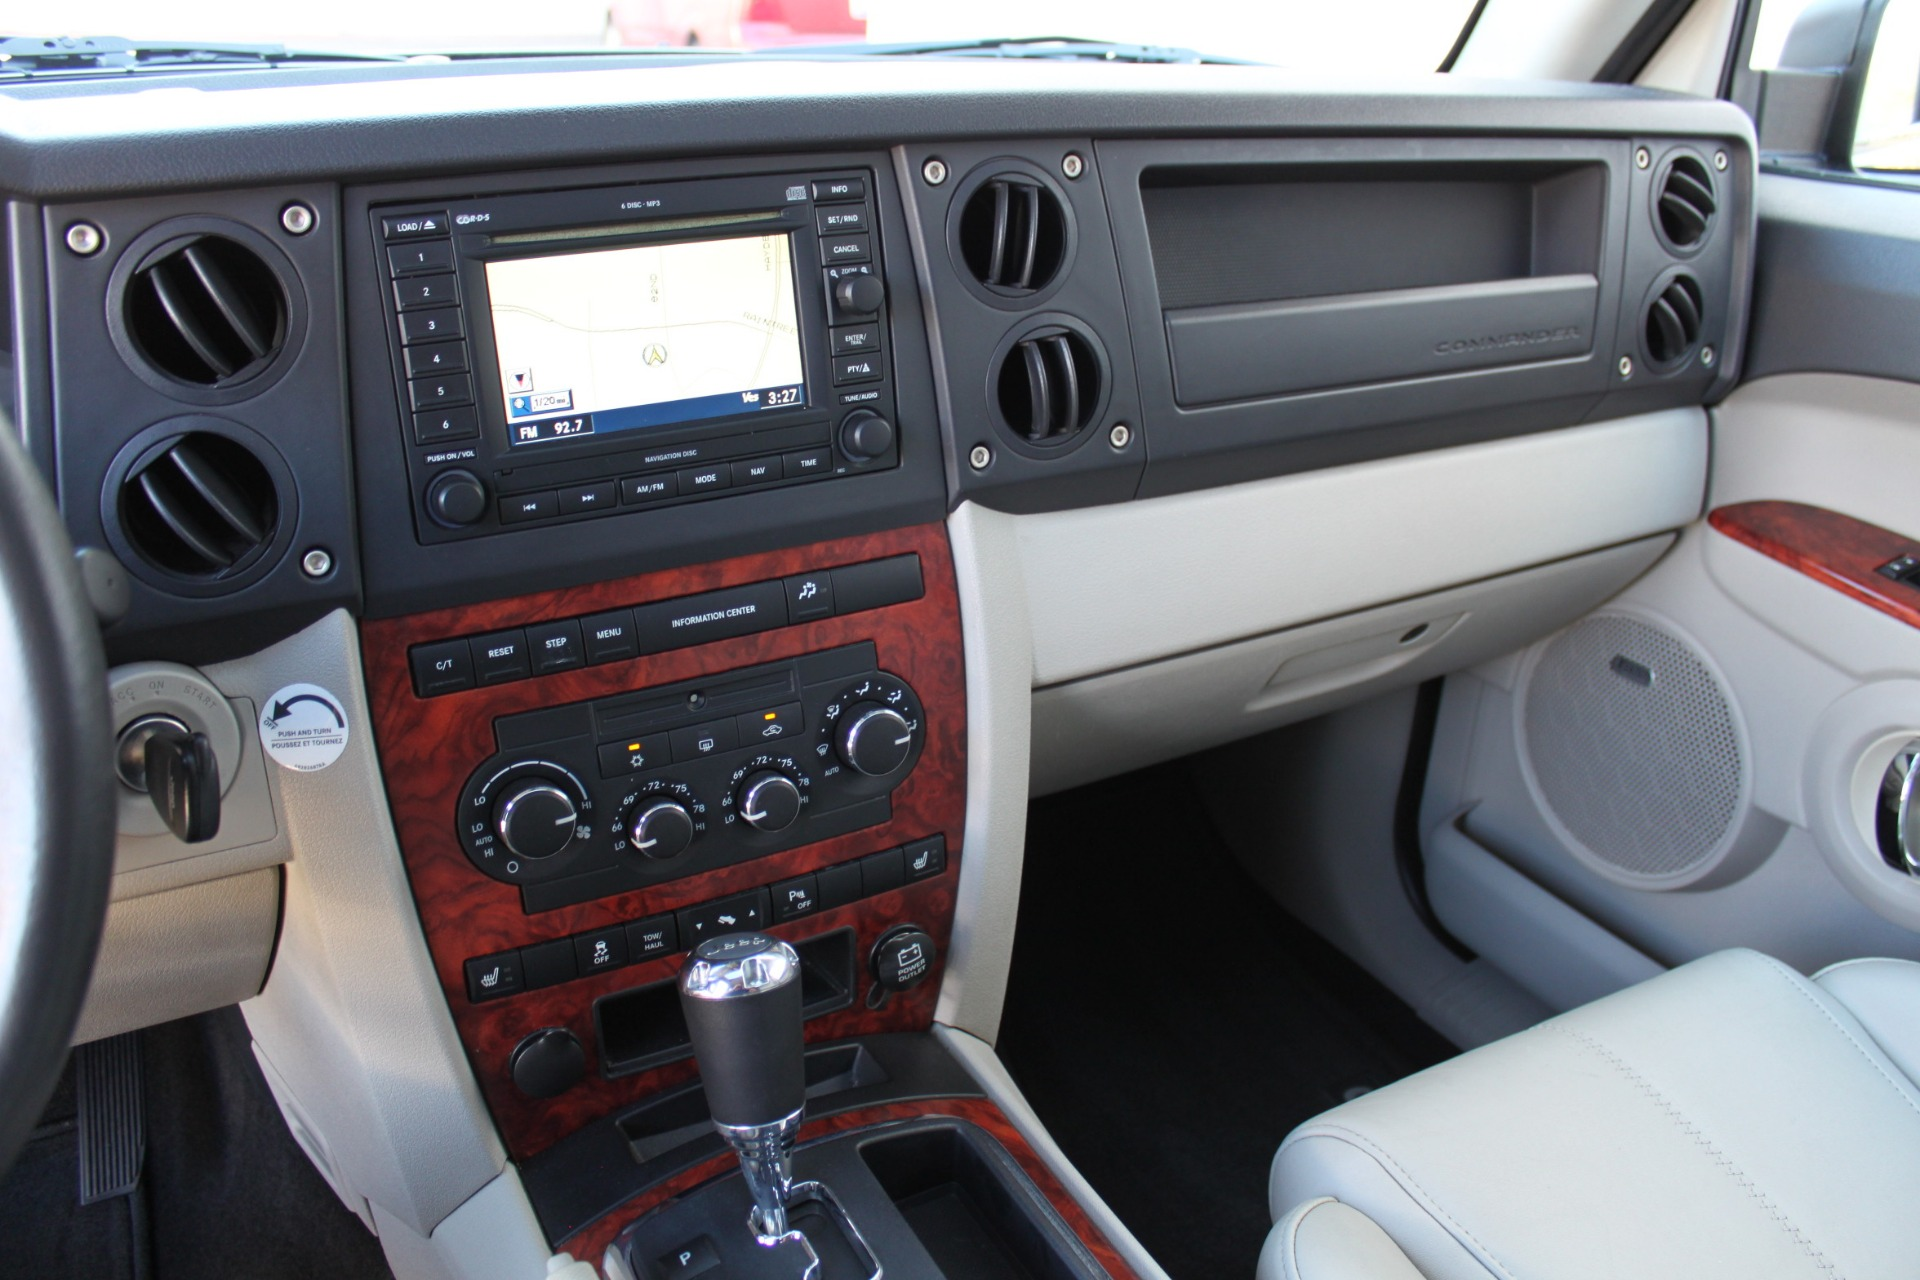 Used-2007-Jeep-Commander-Limited-Range-Rover